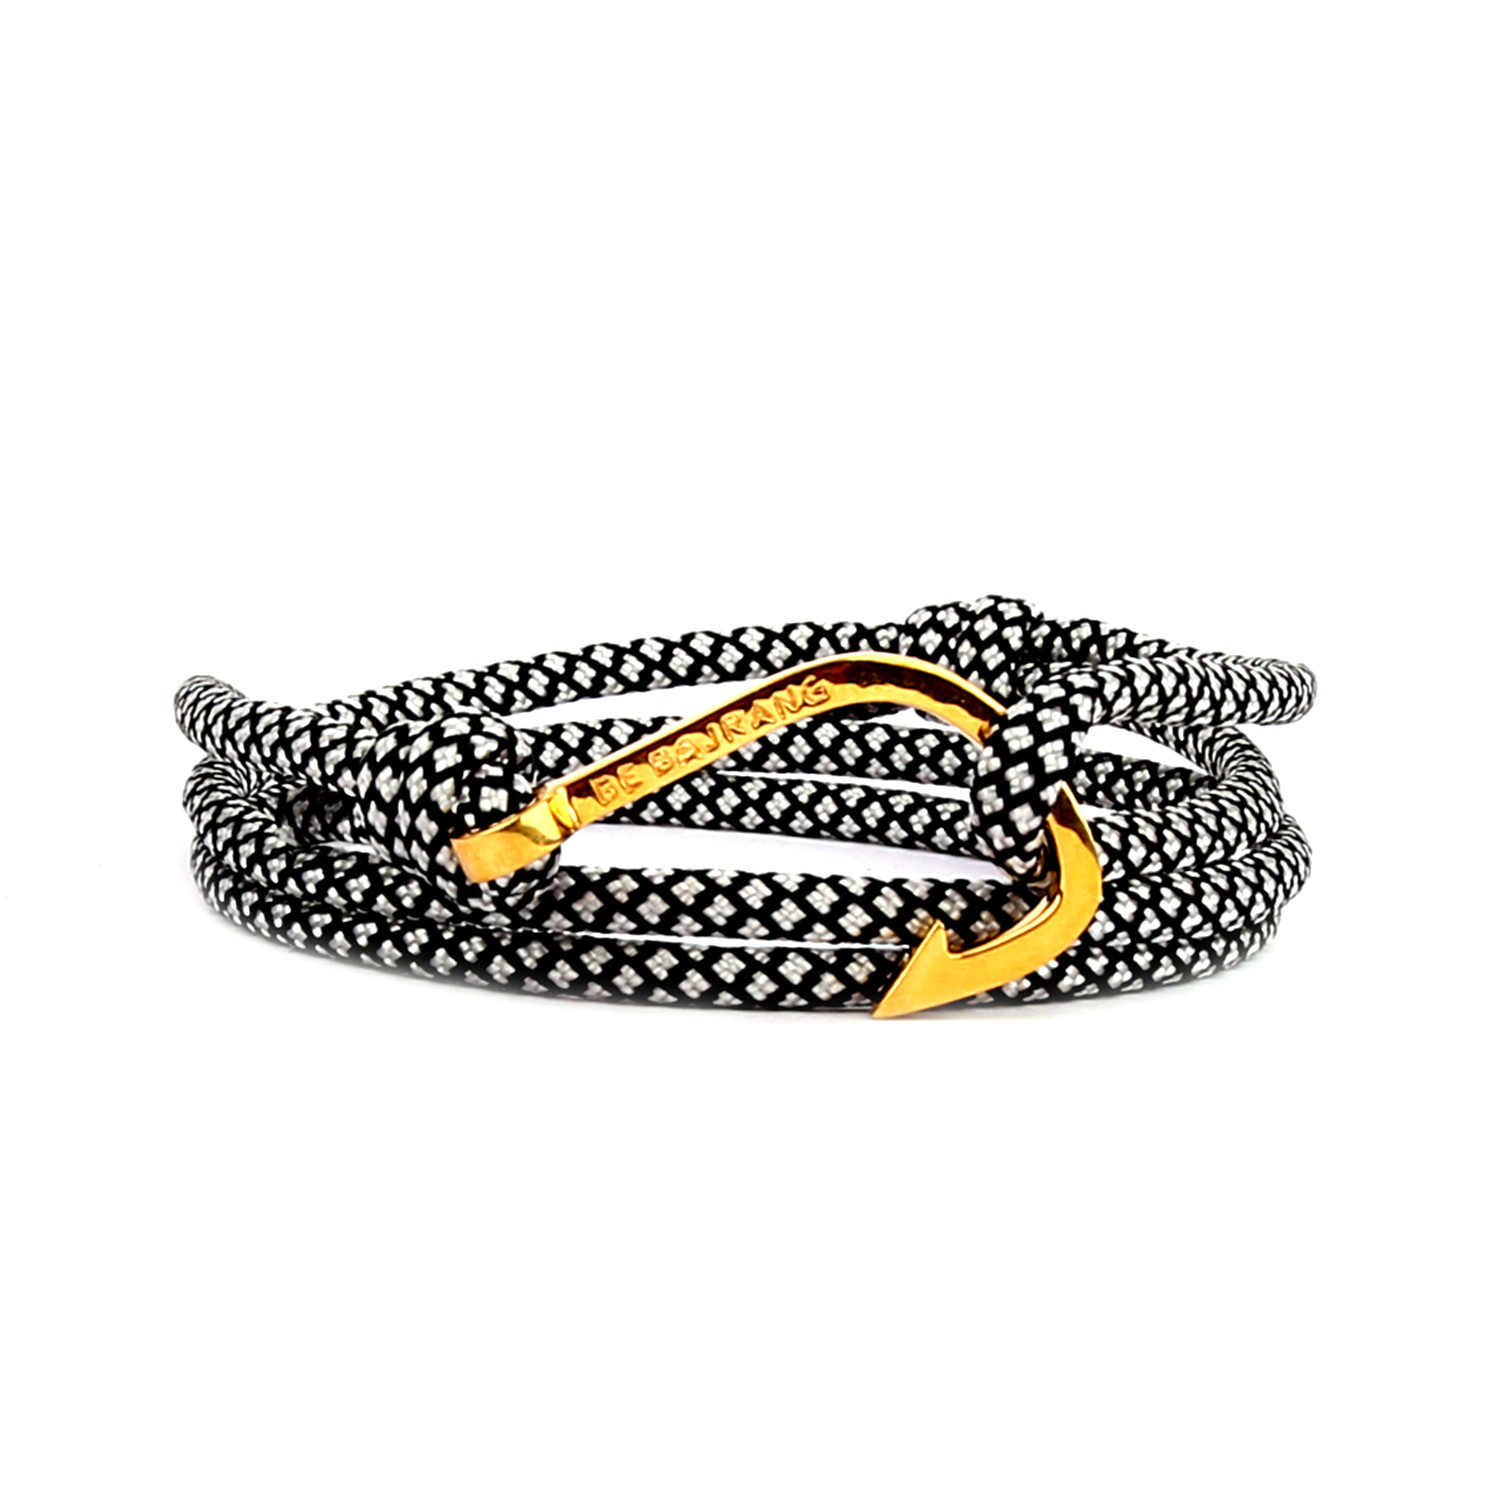 bracelets giovepluvio jewelry enamel rope nautical bangle giftsden yellow cable bracelet